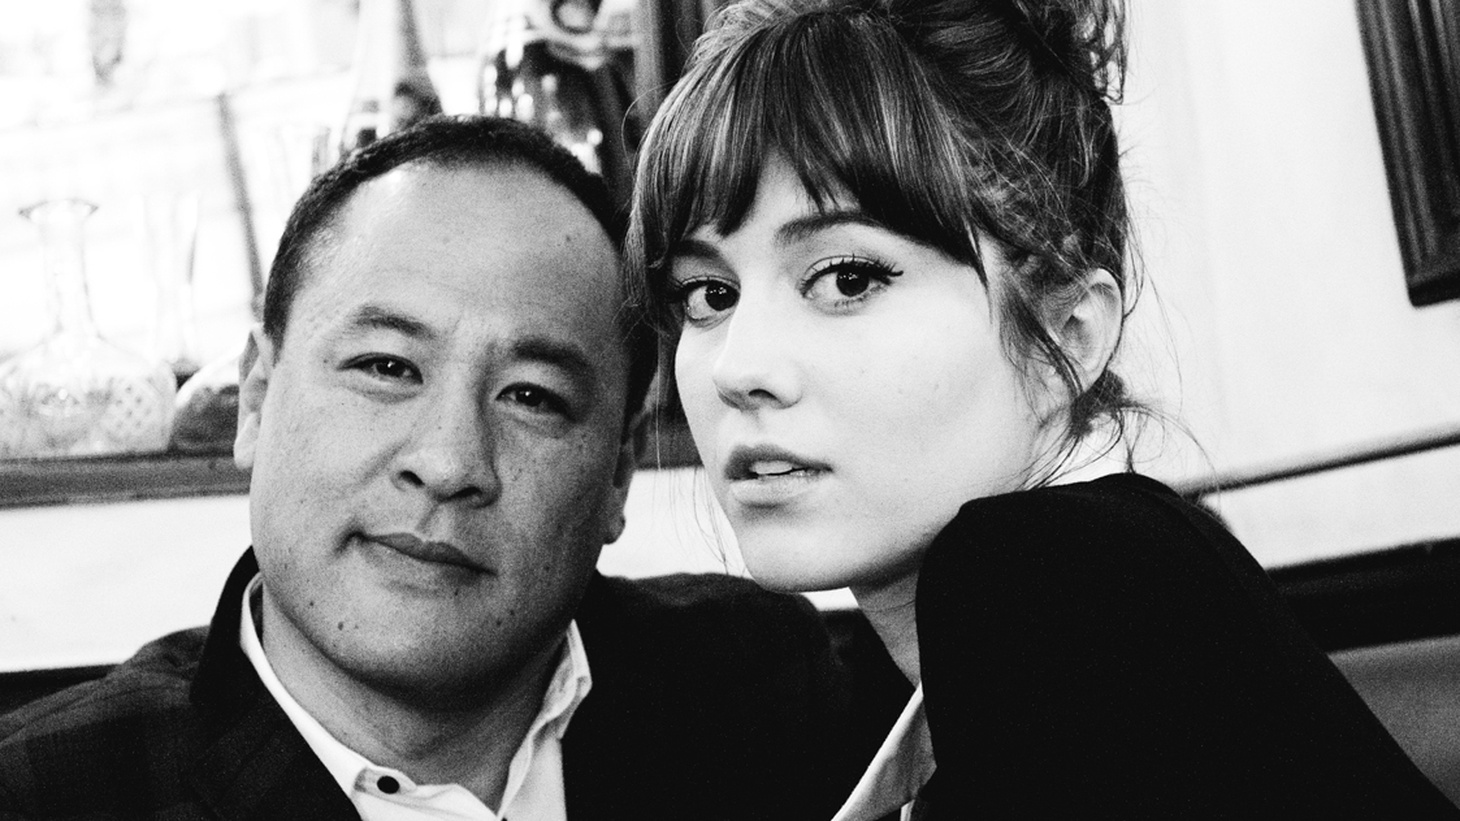 """Dan """"The Automator"""" and actress-turned-singer Mary Elizabeth Winstead whisk us into an imaginary world of jet setters on their debut as Got A Girl."""